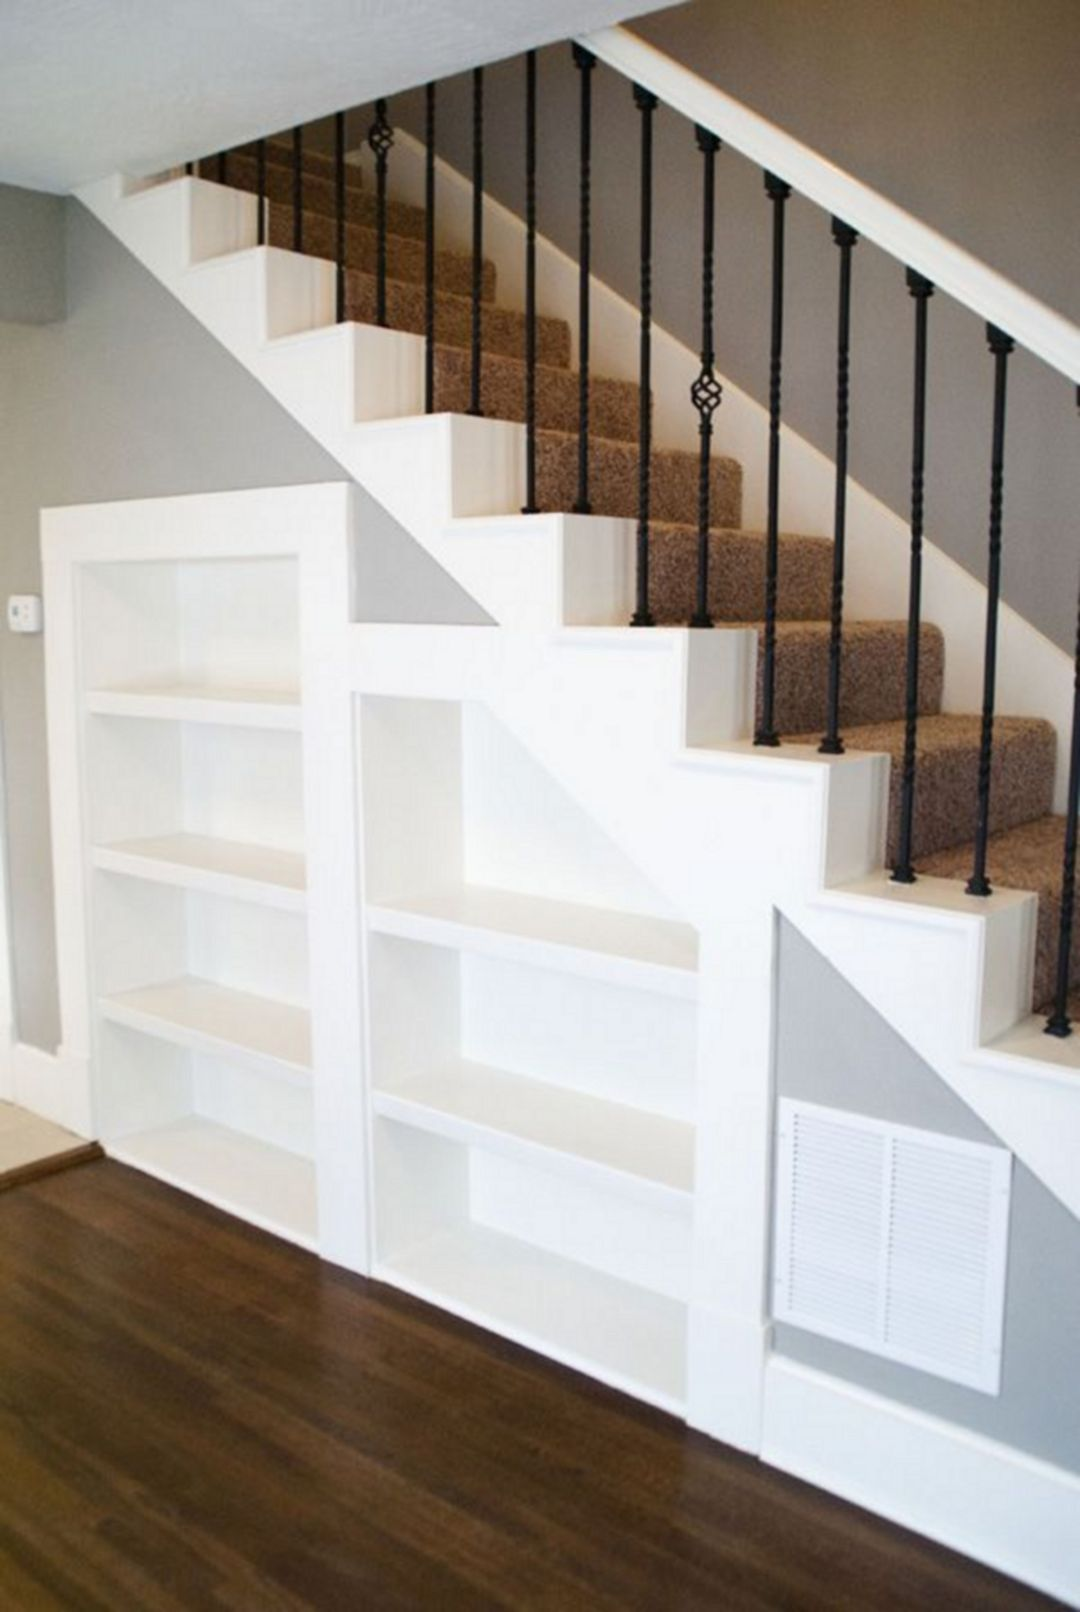 Basement Stair Lighting Pendant: 20+ Basement Stair Design Ideas You Have To Know